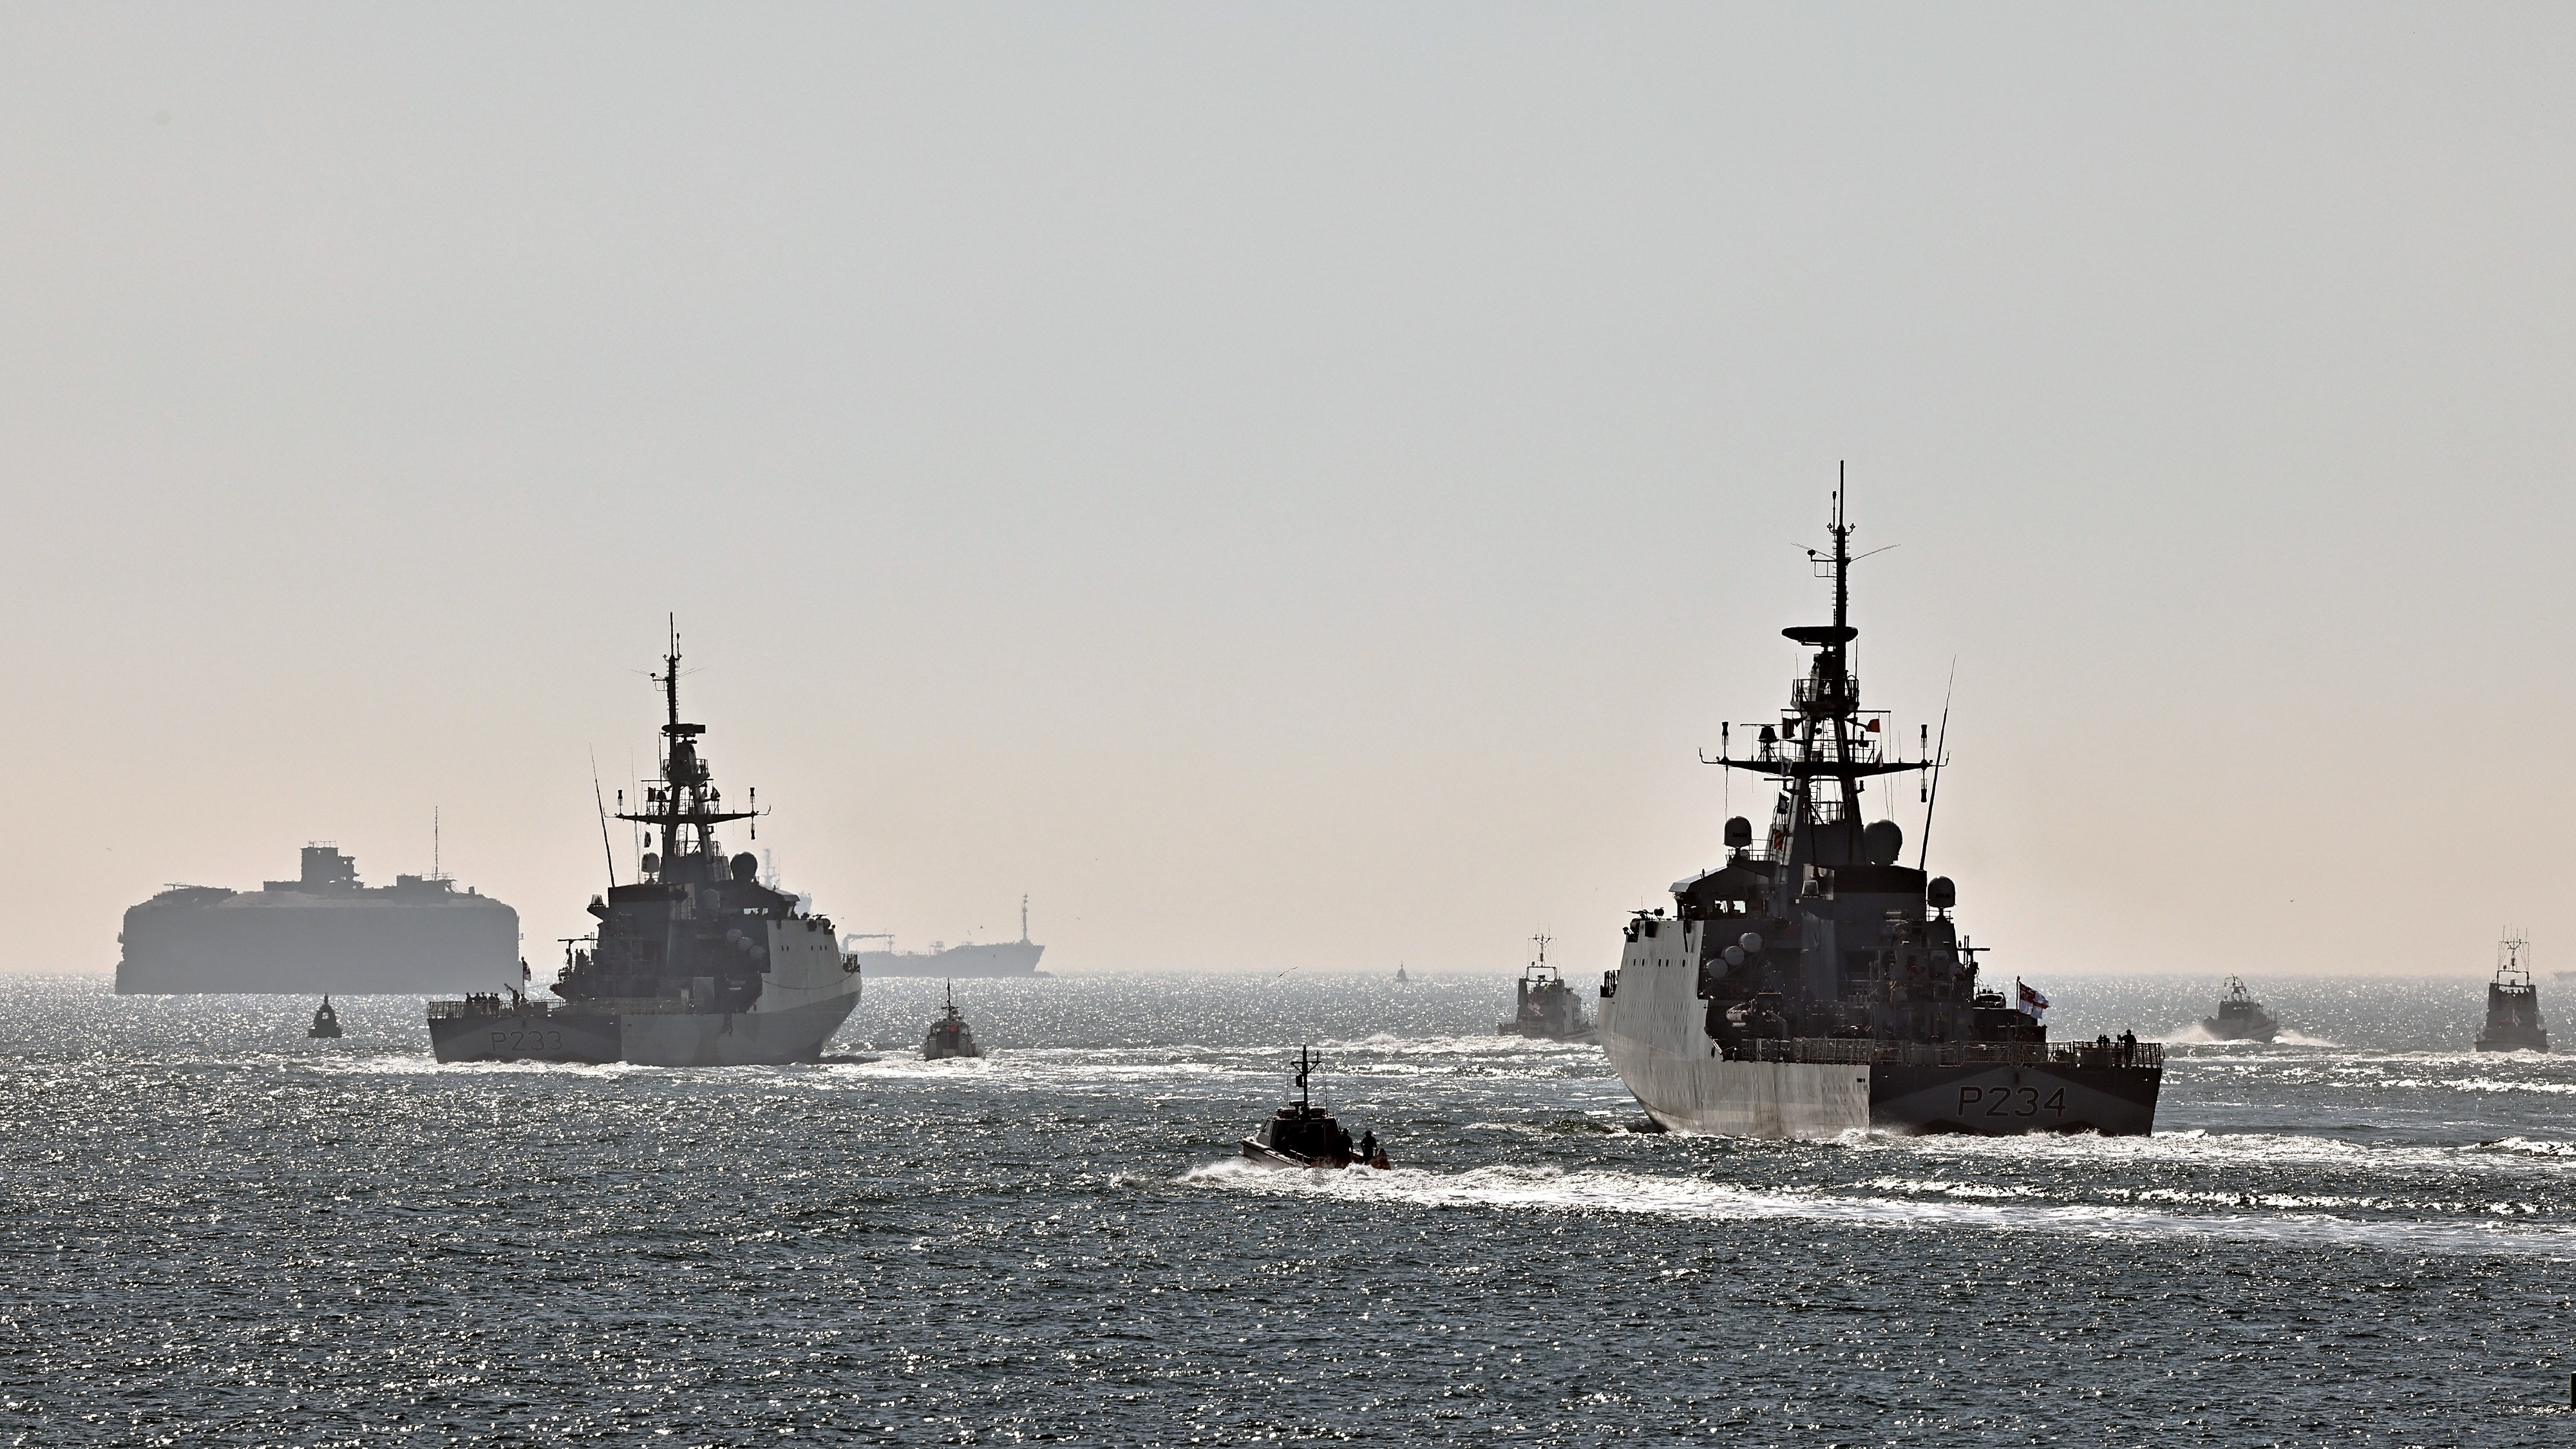 From left to right: HMS Tamar and HMS Spey.